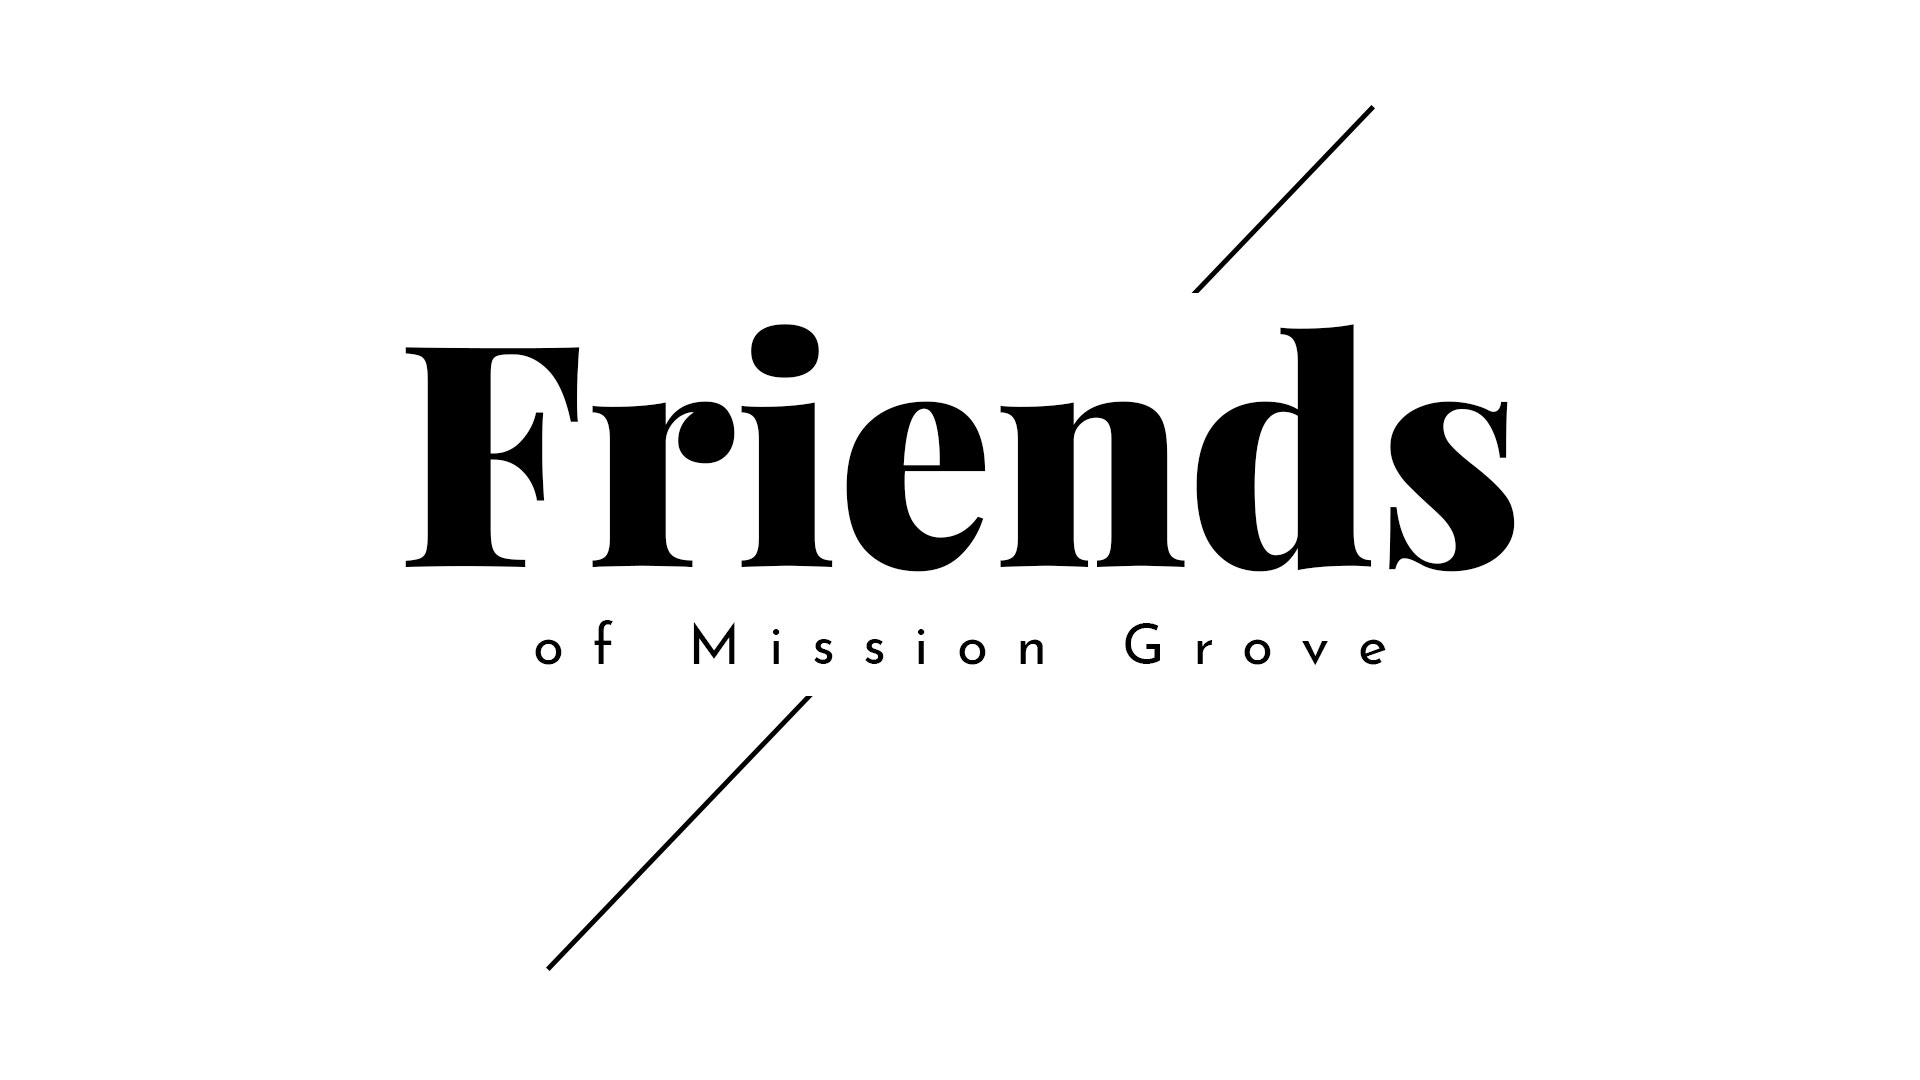 logo-SCREEN-FriendsOfMissionGrove